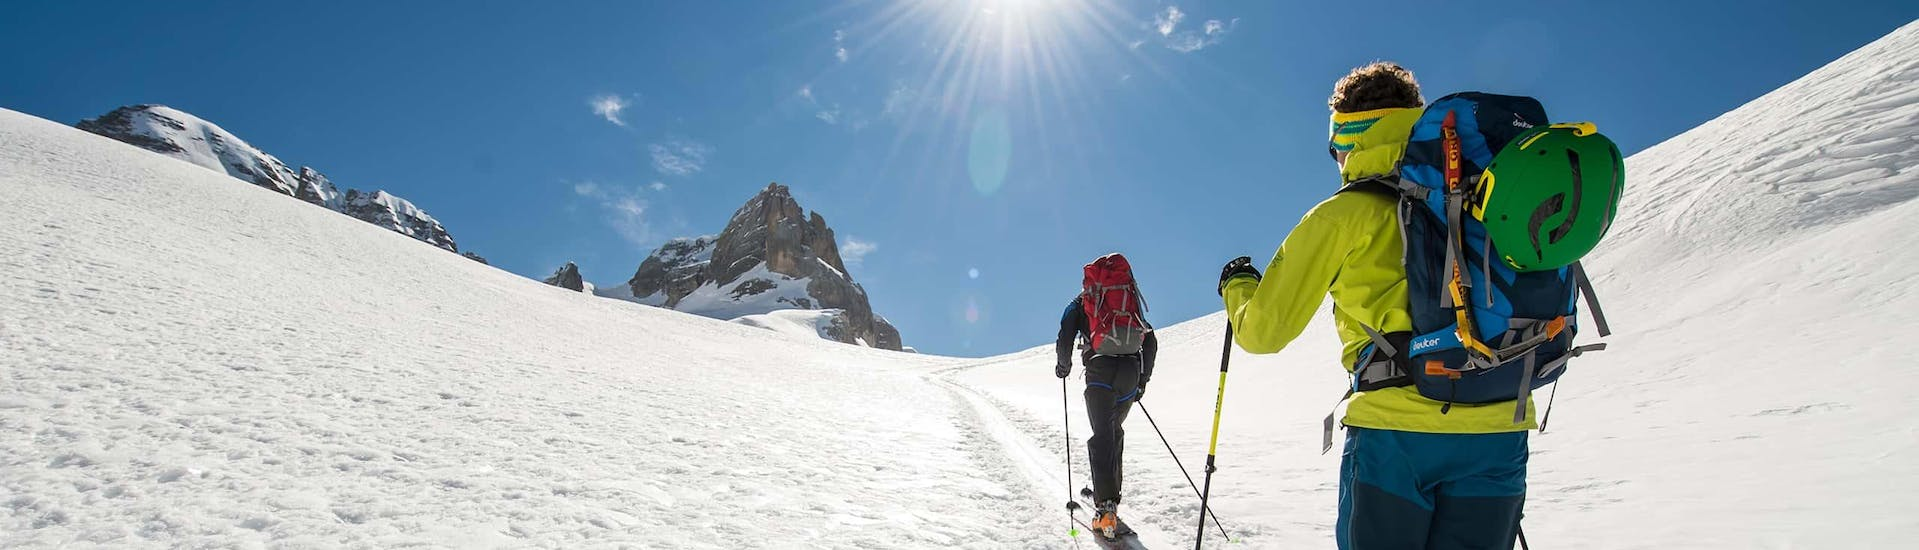 A skier following his Private Ski Touring Guide for All Levels from Ski School Stuben up to the top of the mountain while out ski touring.